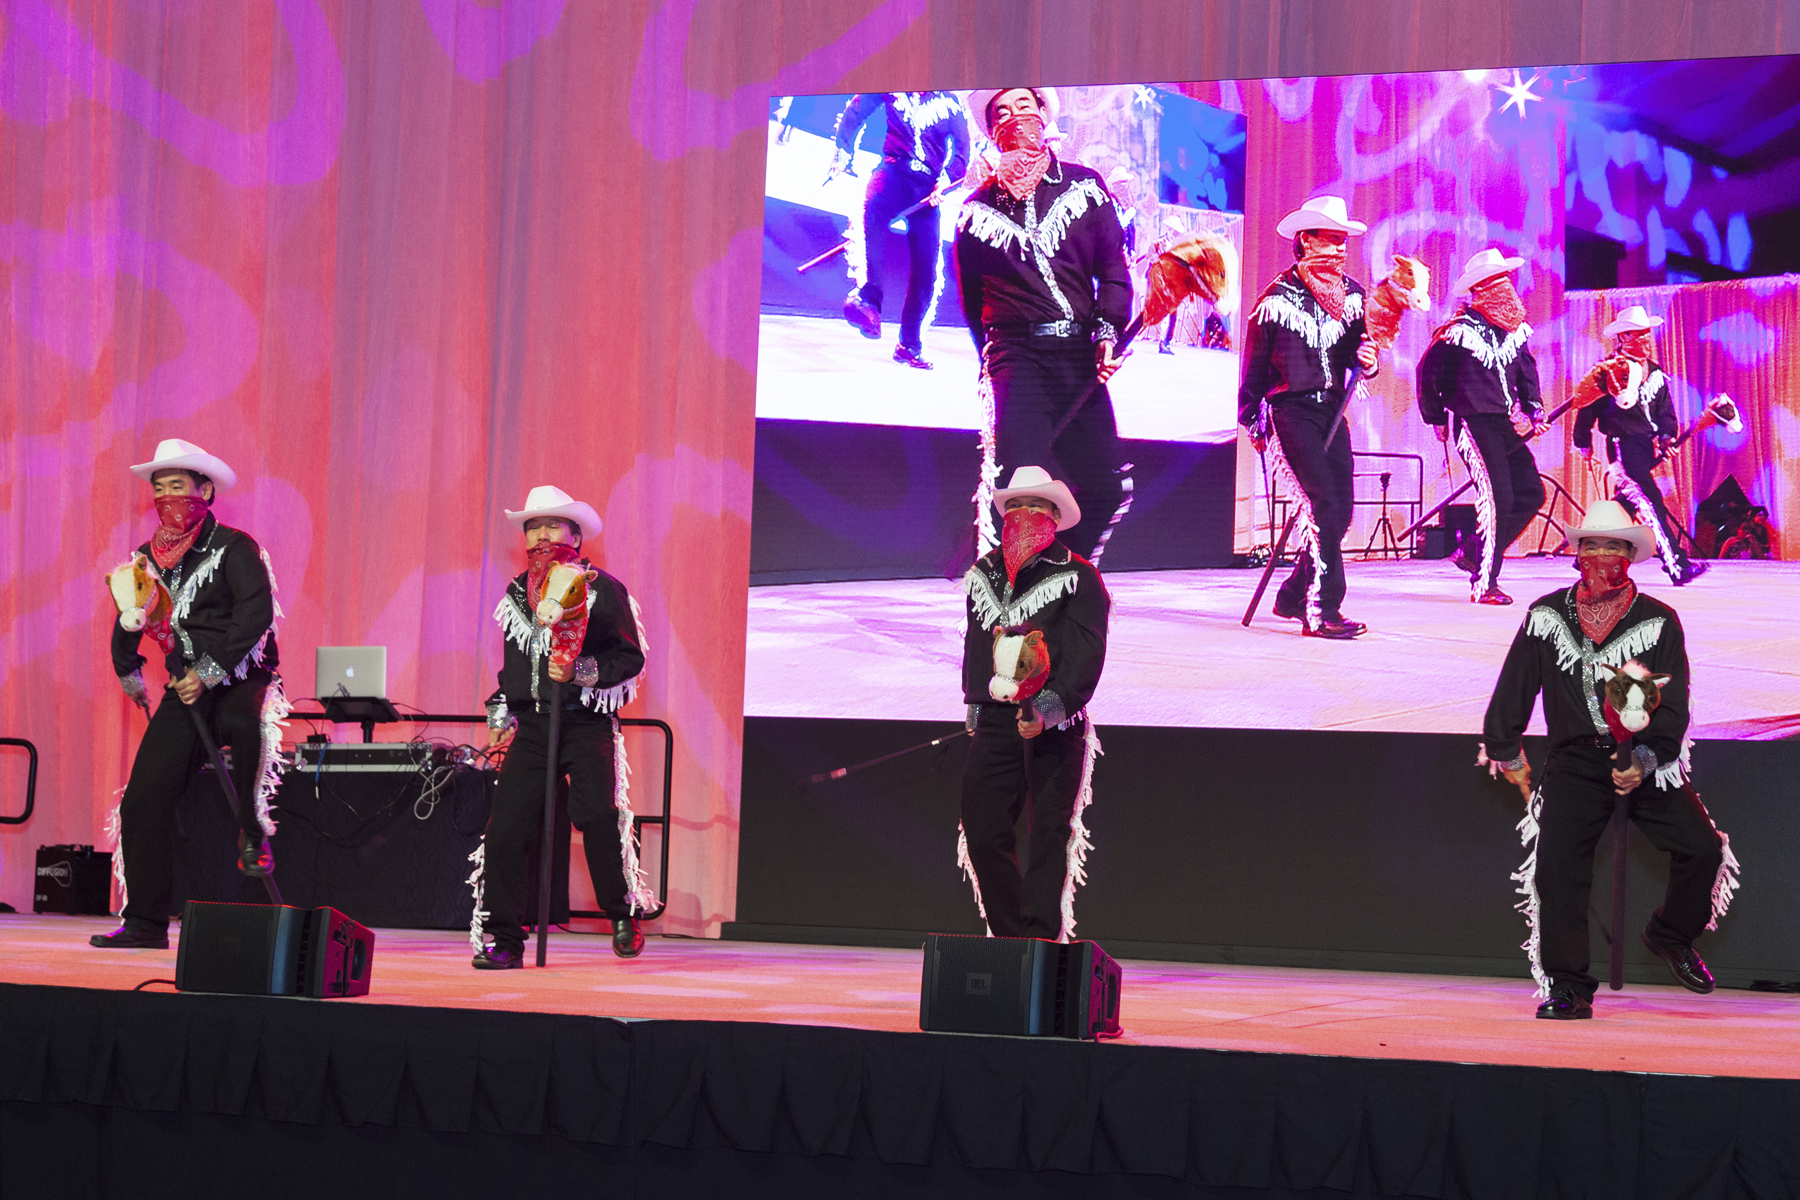 """2016 AN EVENING AROUND THE WORLD: Yee Haw! (L to R) CFS cowboys Michael Young (Albert C. Kobayashi, Inc.), Glen Kaneshige (Nordic PCL Construction, Inc.), Joe Young (Deloitte & Touche LLP), & Walter Yamane (Hawaiian Dredging Construction Company, Inc.) ride onto stage with their """"horses"""" to the music of Boot Scootin' Boogie (Brooks & Dunn')!"""